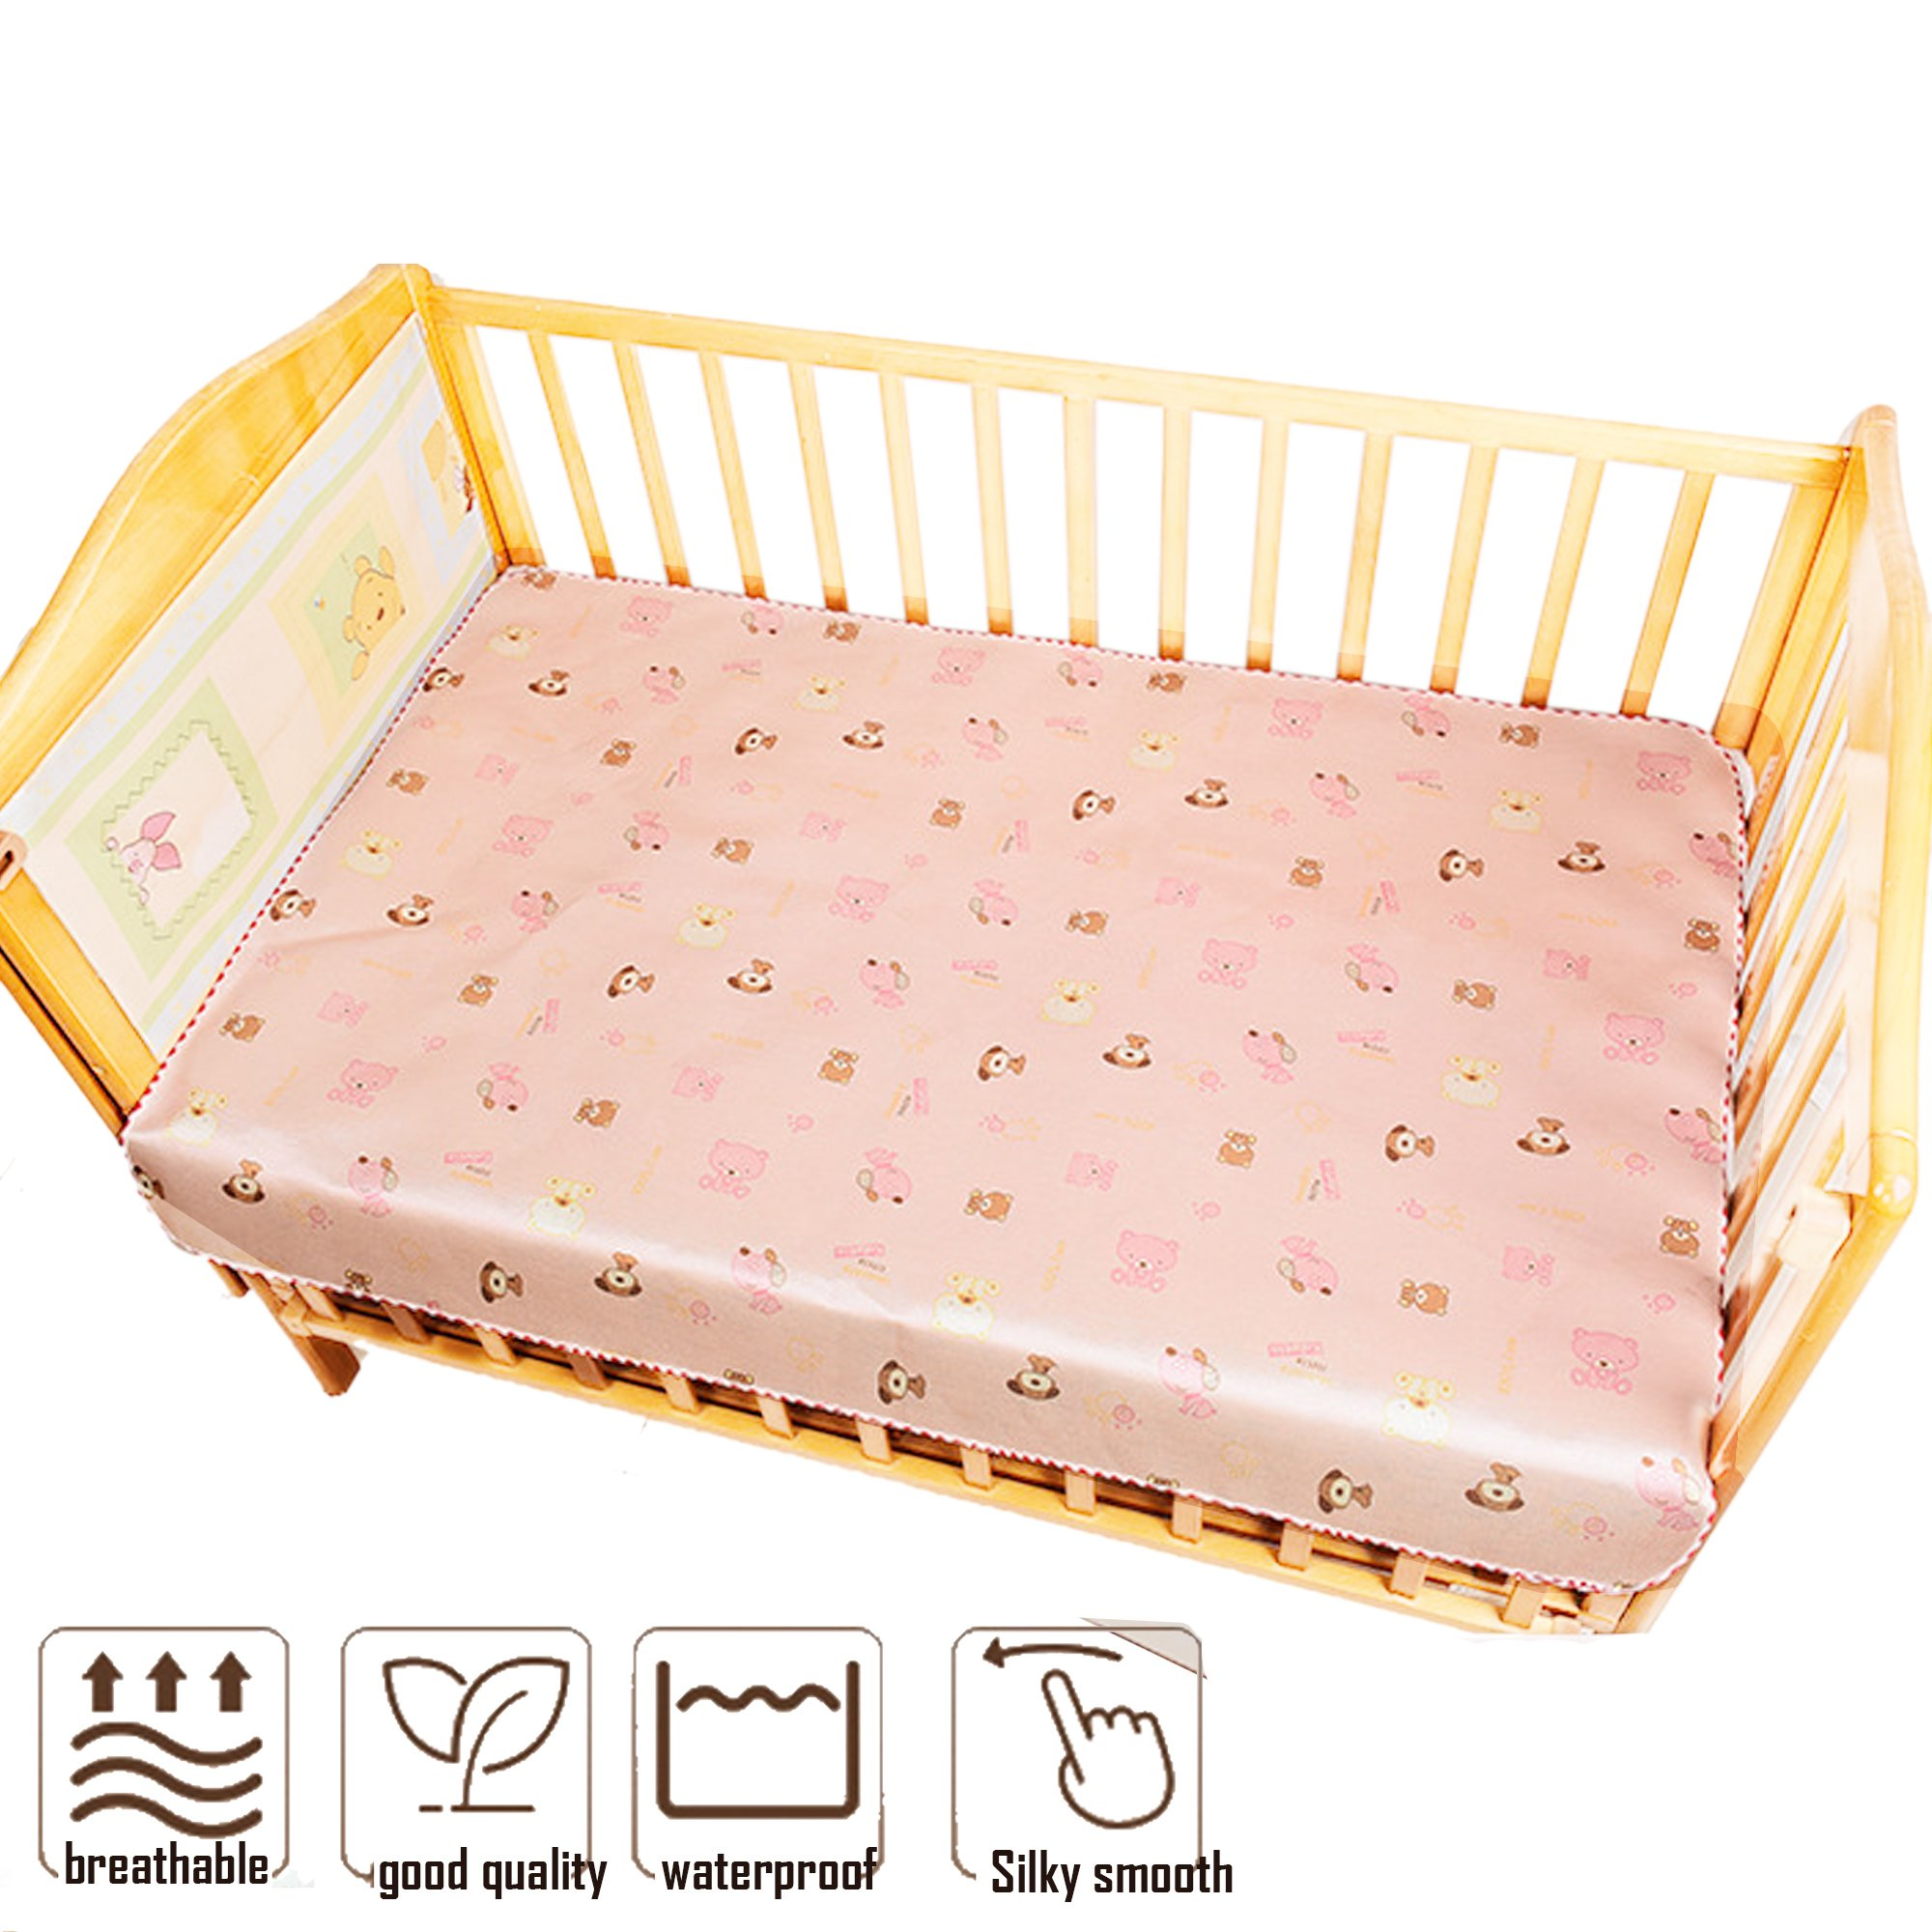 Toddler Mattress Protector Rattan Cooling Summer Sleeping Pads Diaper Changing Waterproof (Baby Pink, 60120cm)